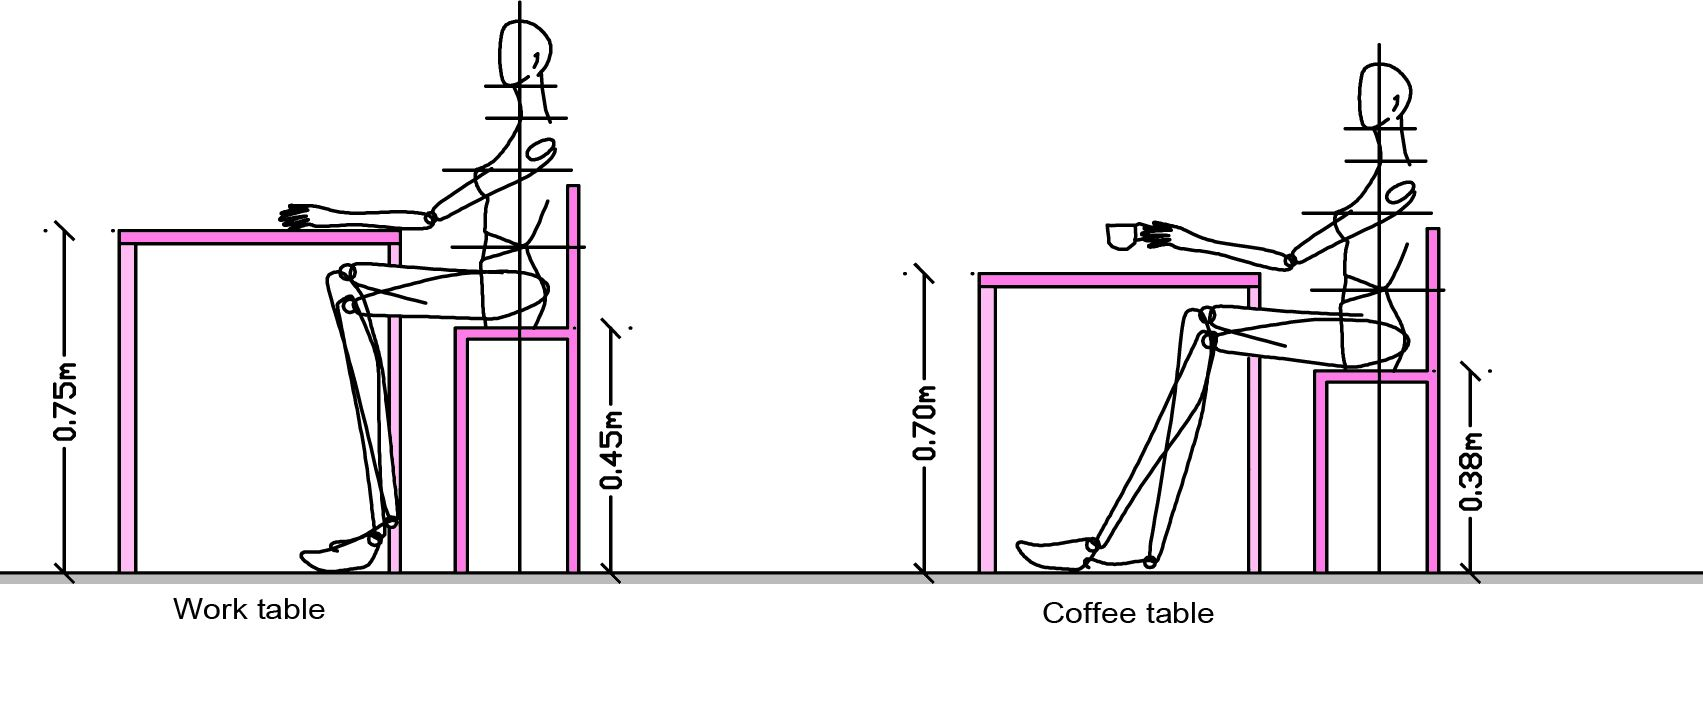 Body Measurements ergonomics For Table And Chair Dining